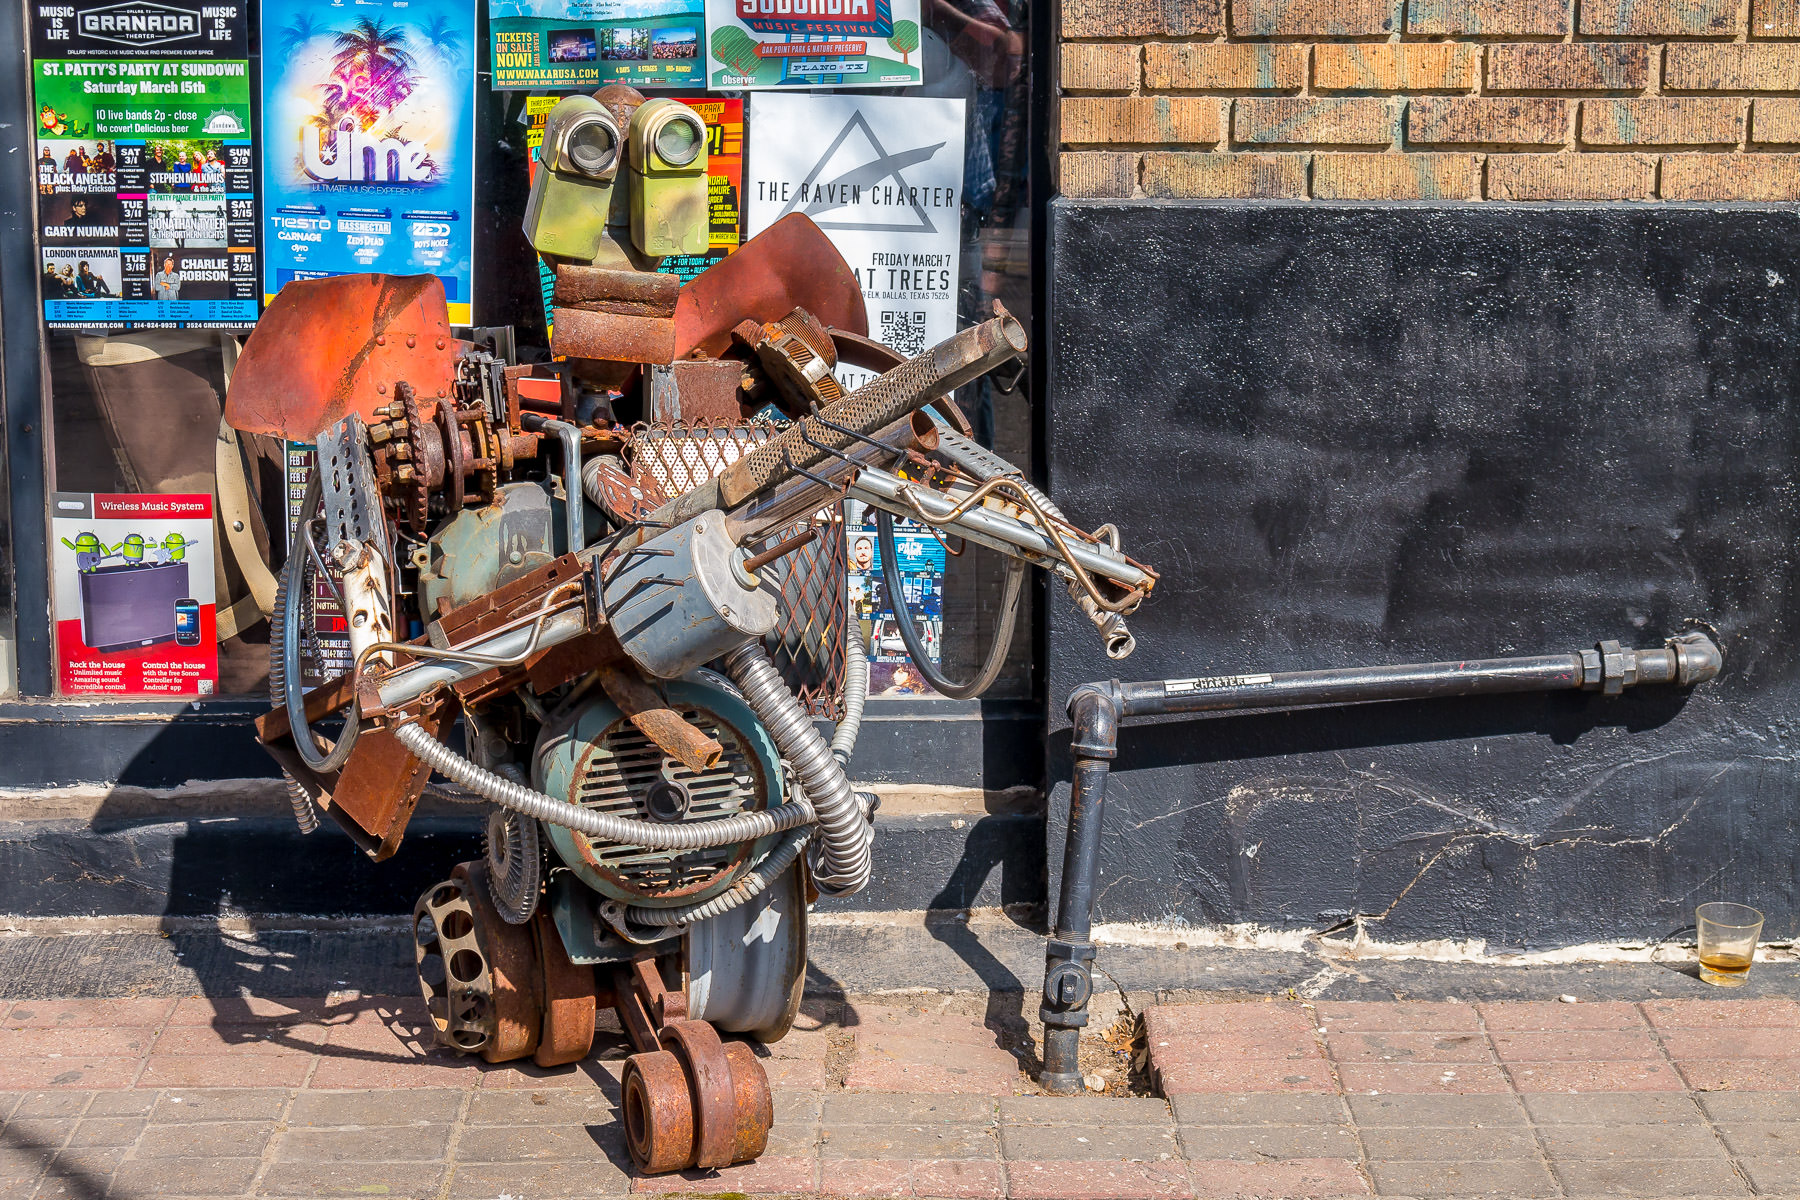 A street art sculpture made of old junk found in Dallas' Deep Ellum neighborhood.